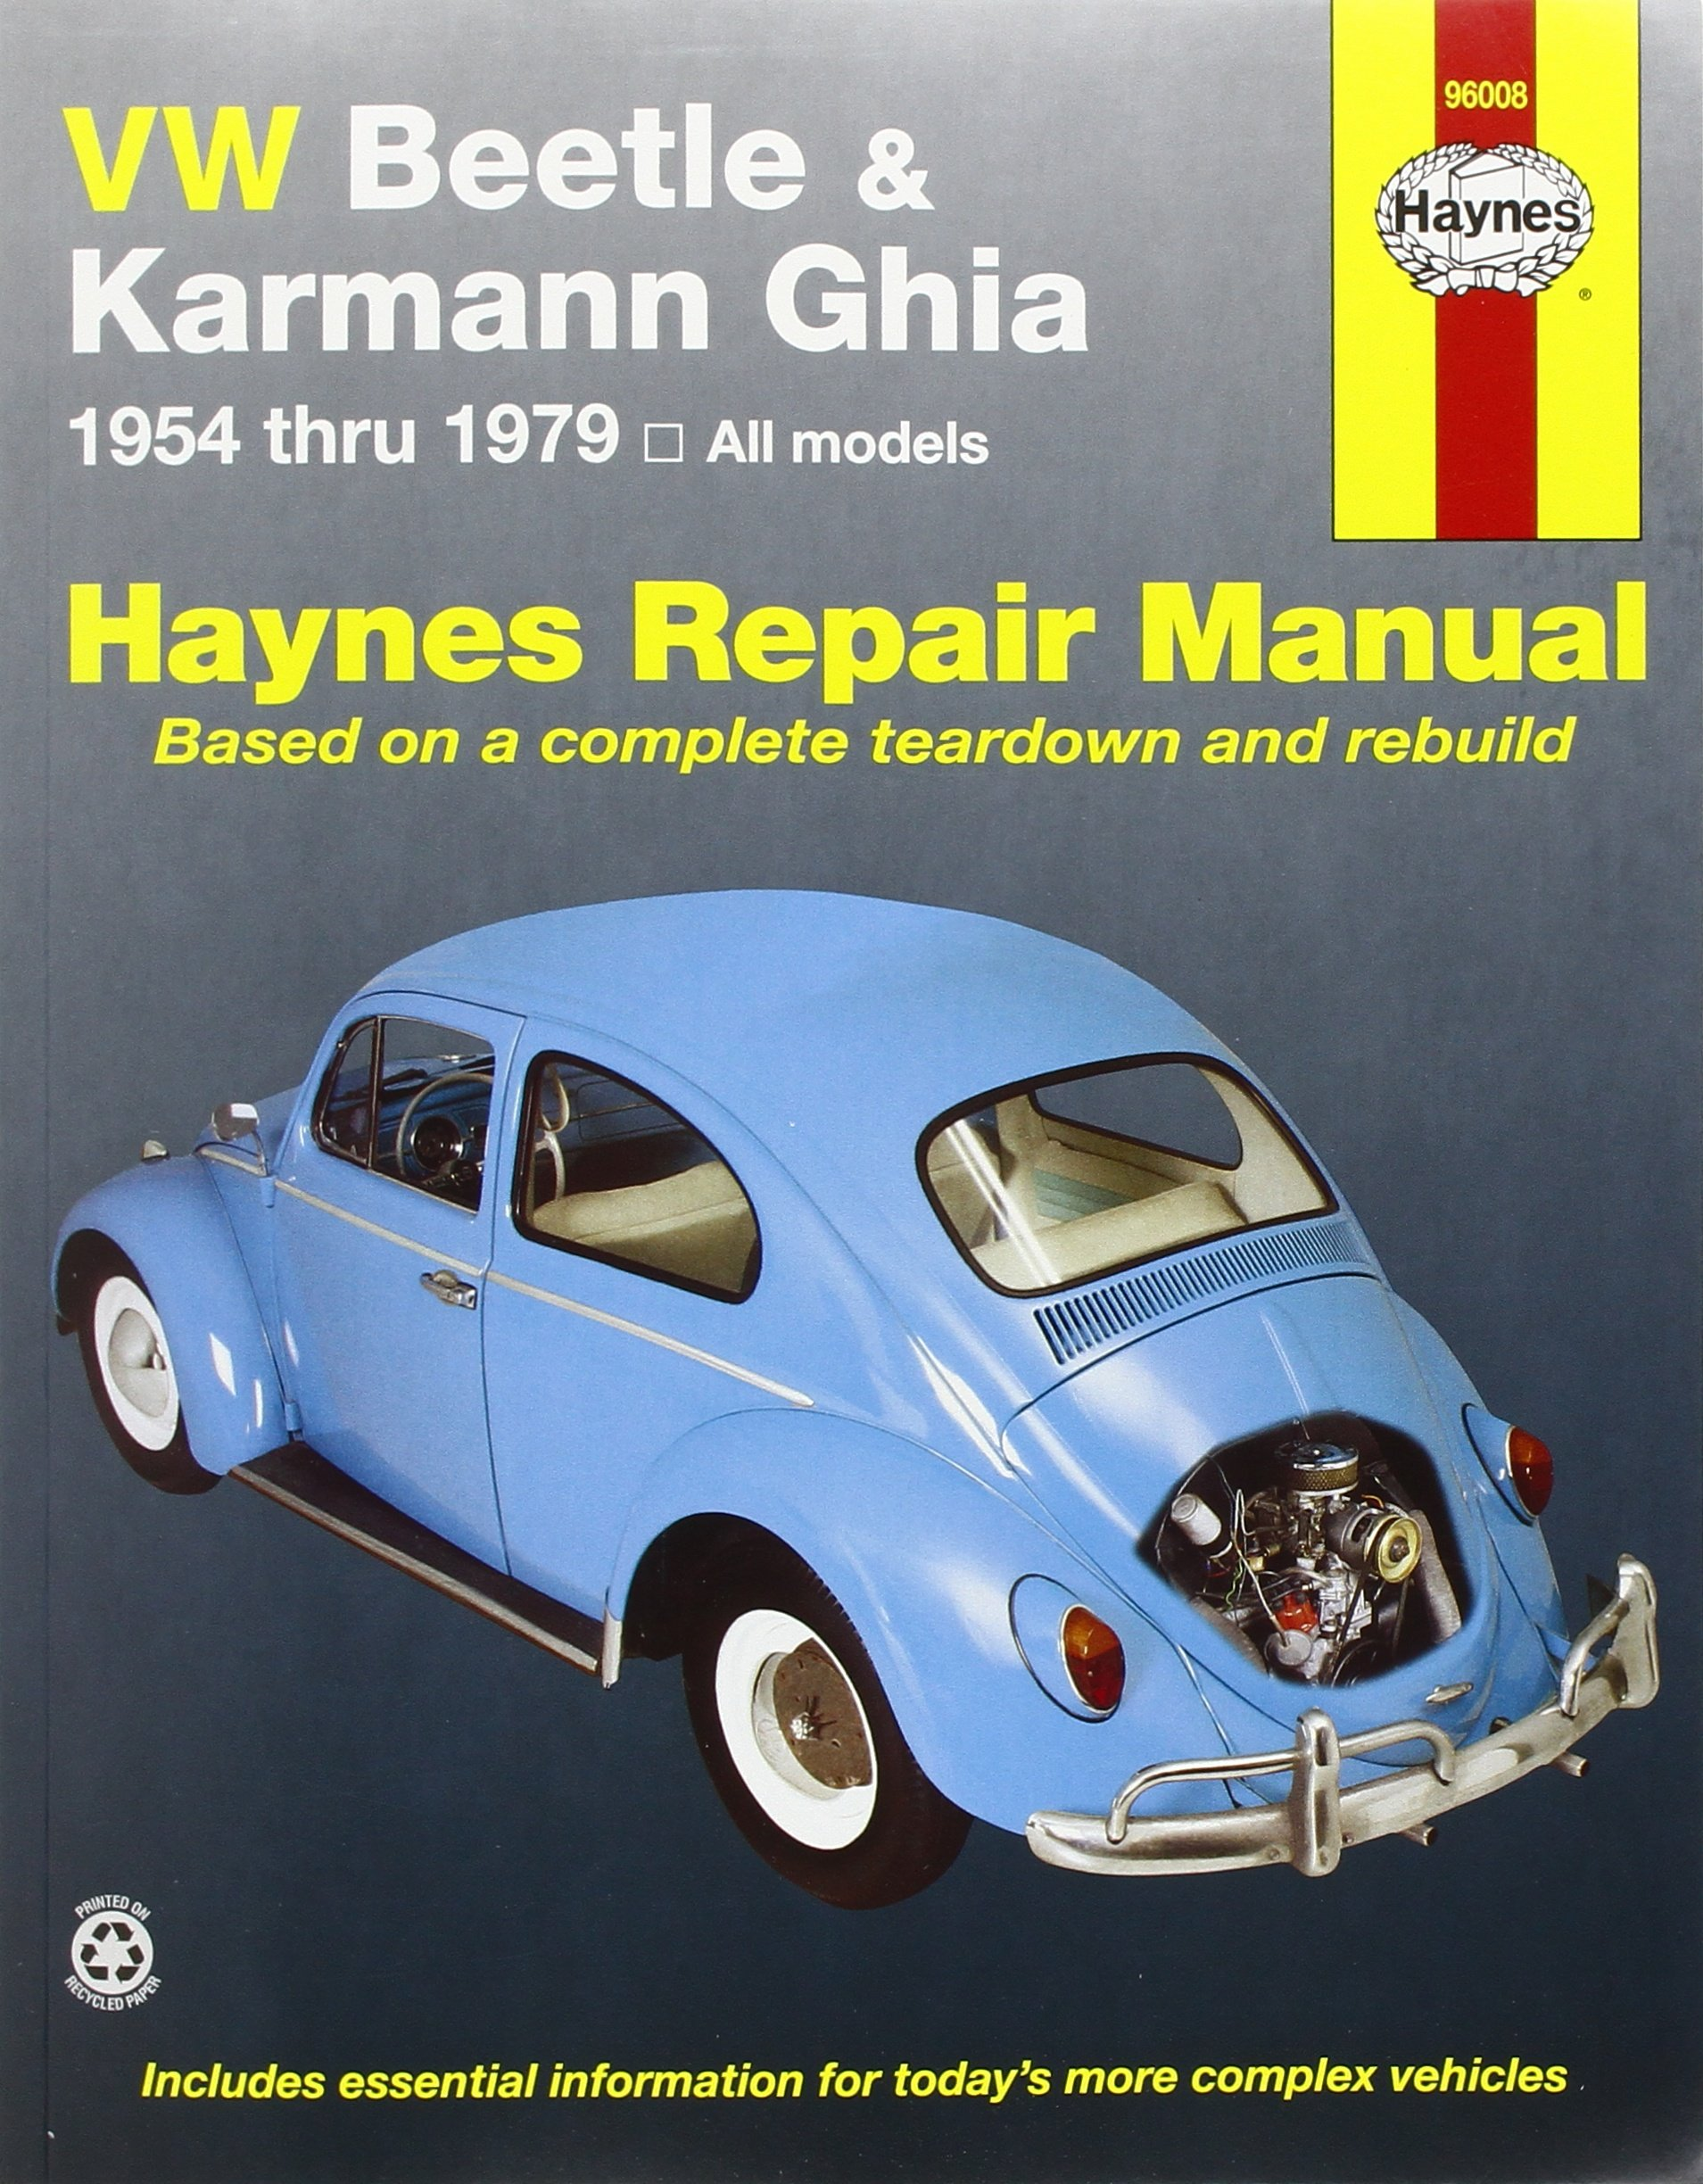 vw beetle karmann ghia 1954 through 1979 all models haynes repair rh amazon com VW Beetle Car VW Beetle Car